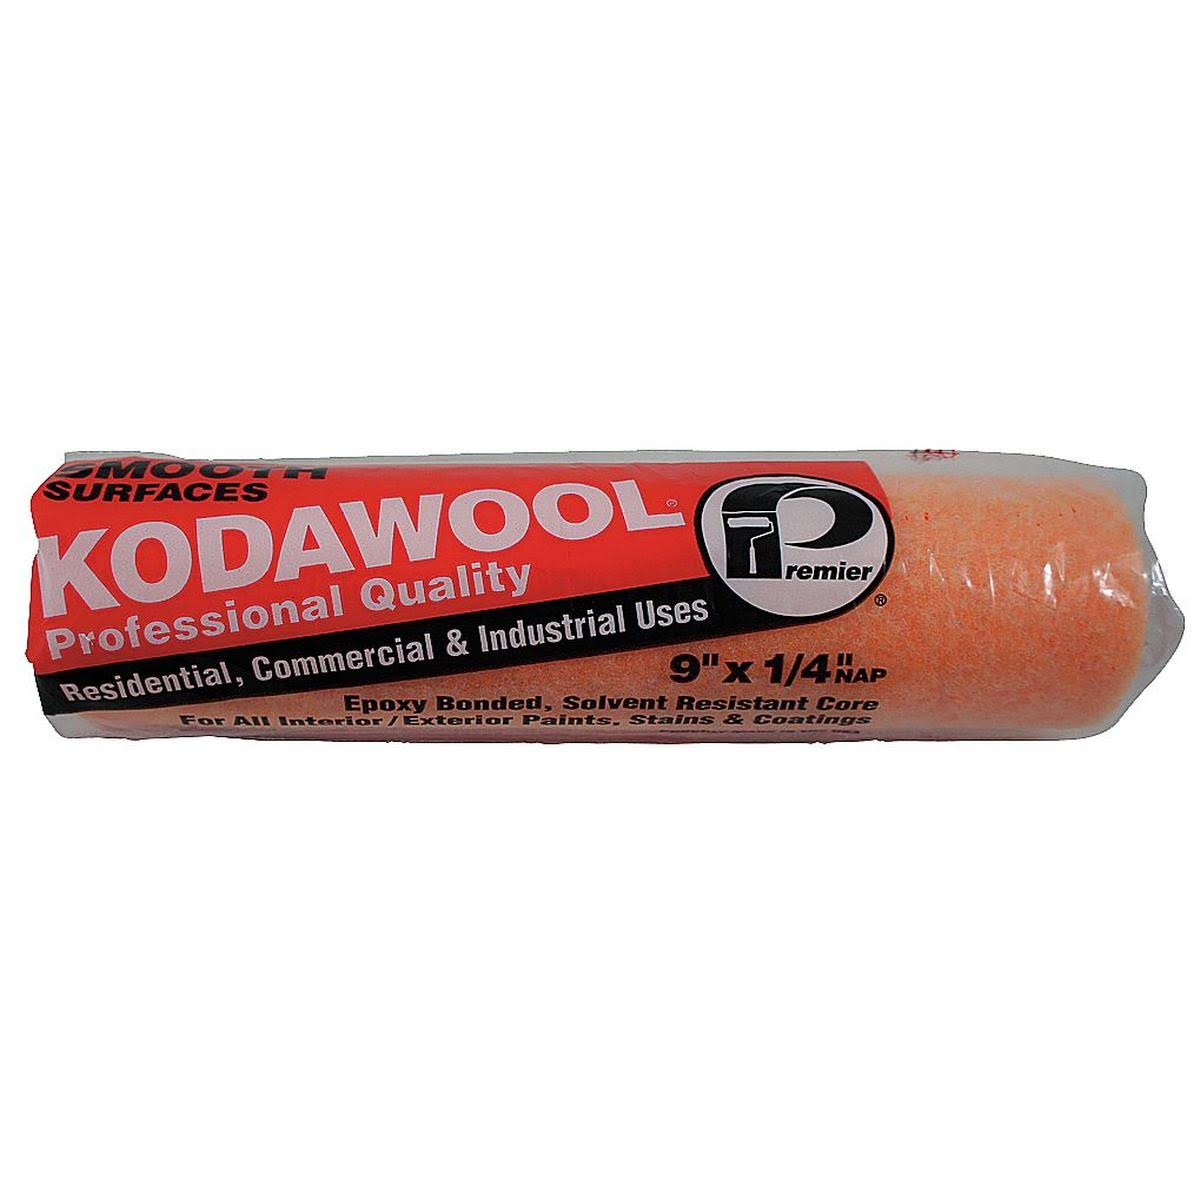 "Kodawool High Density Synthetic Blend Paint Roller Cover - 9"" x 1/4"""